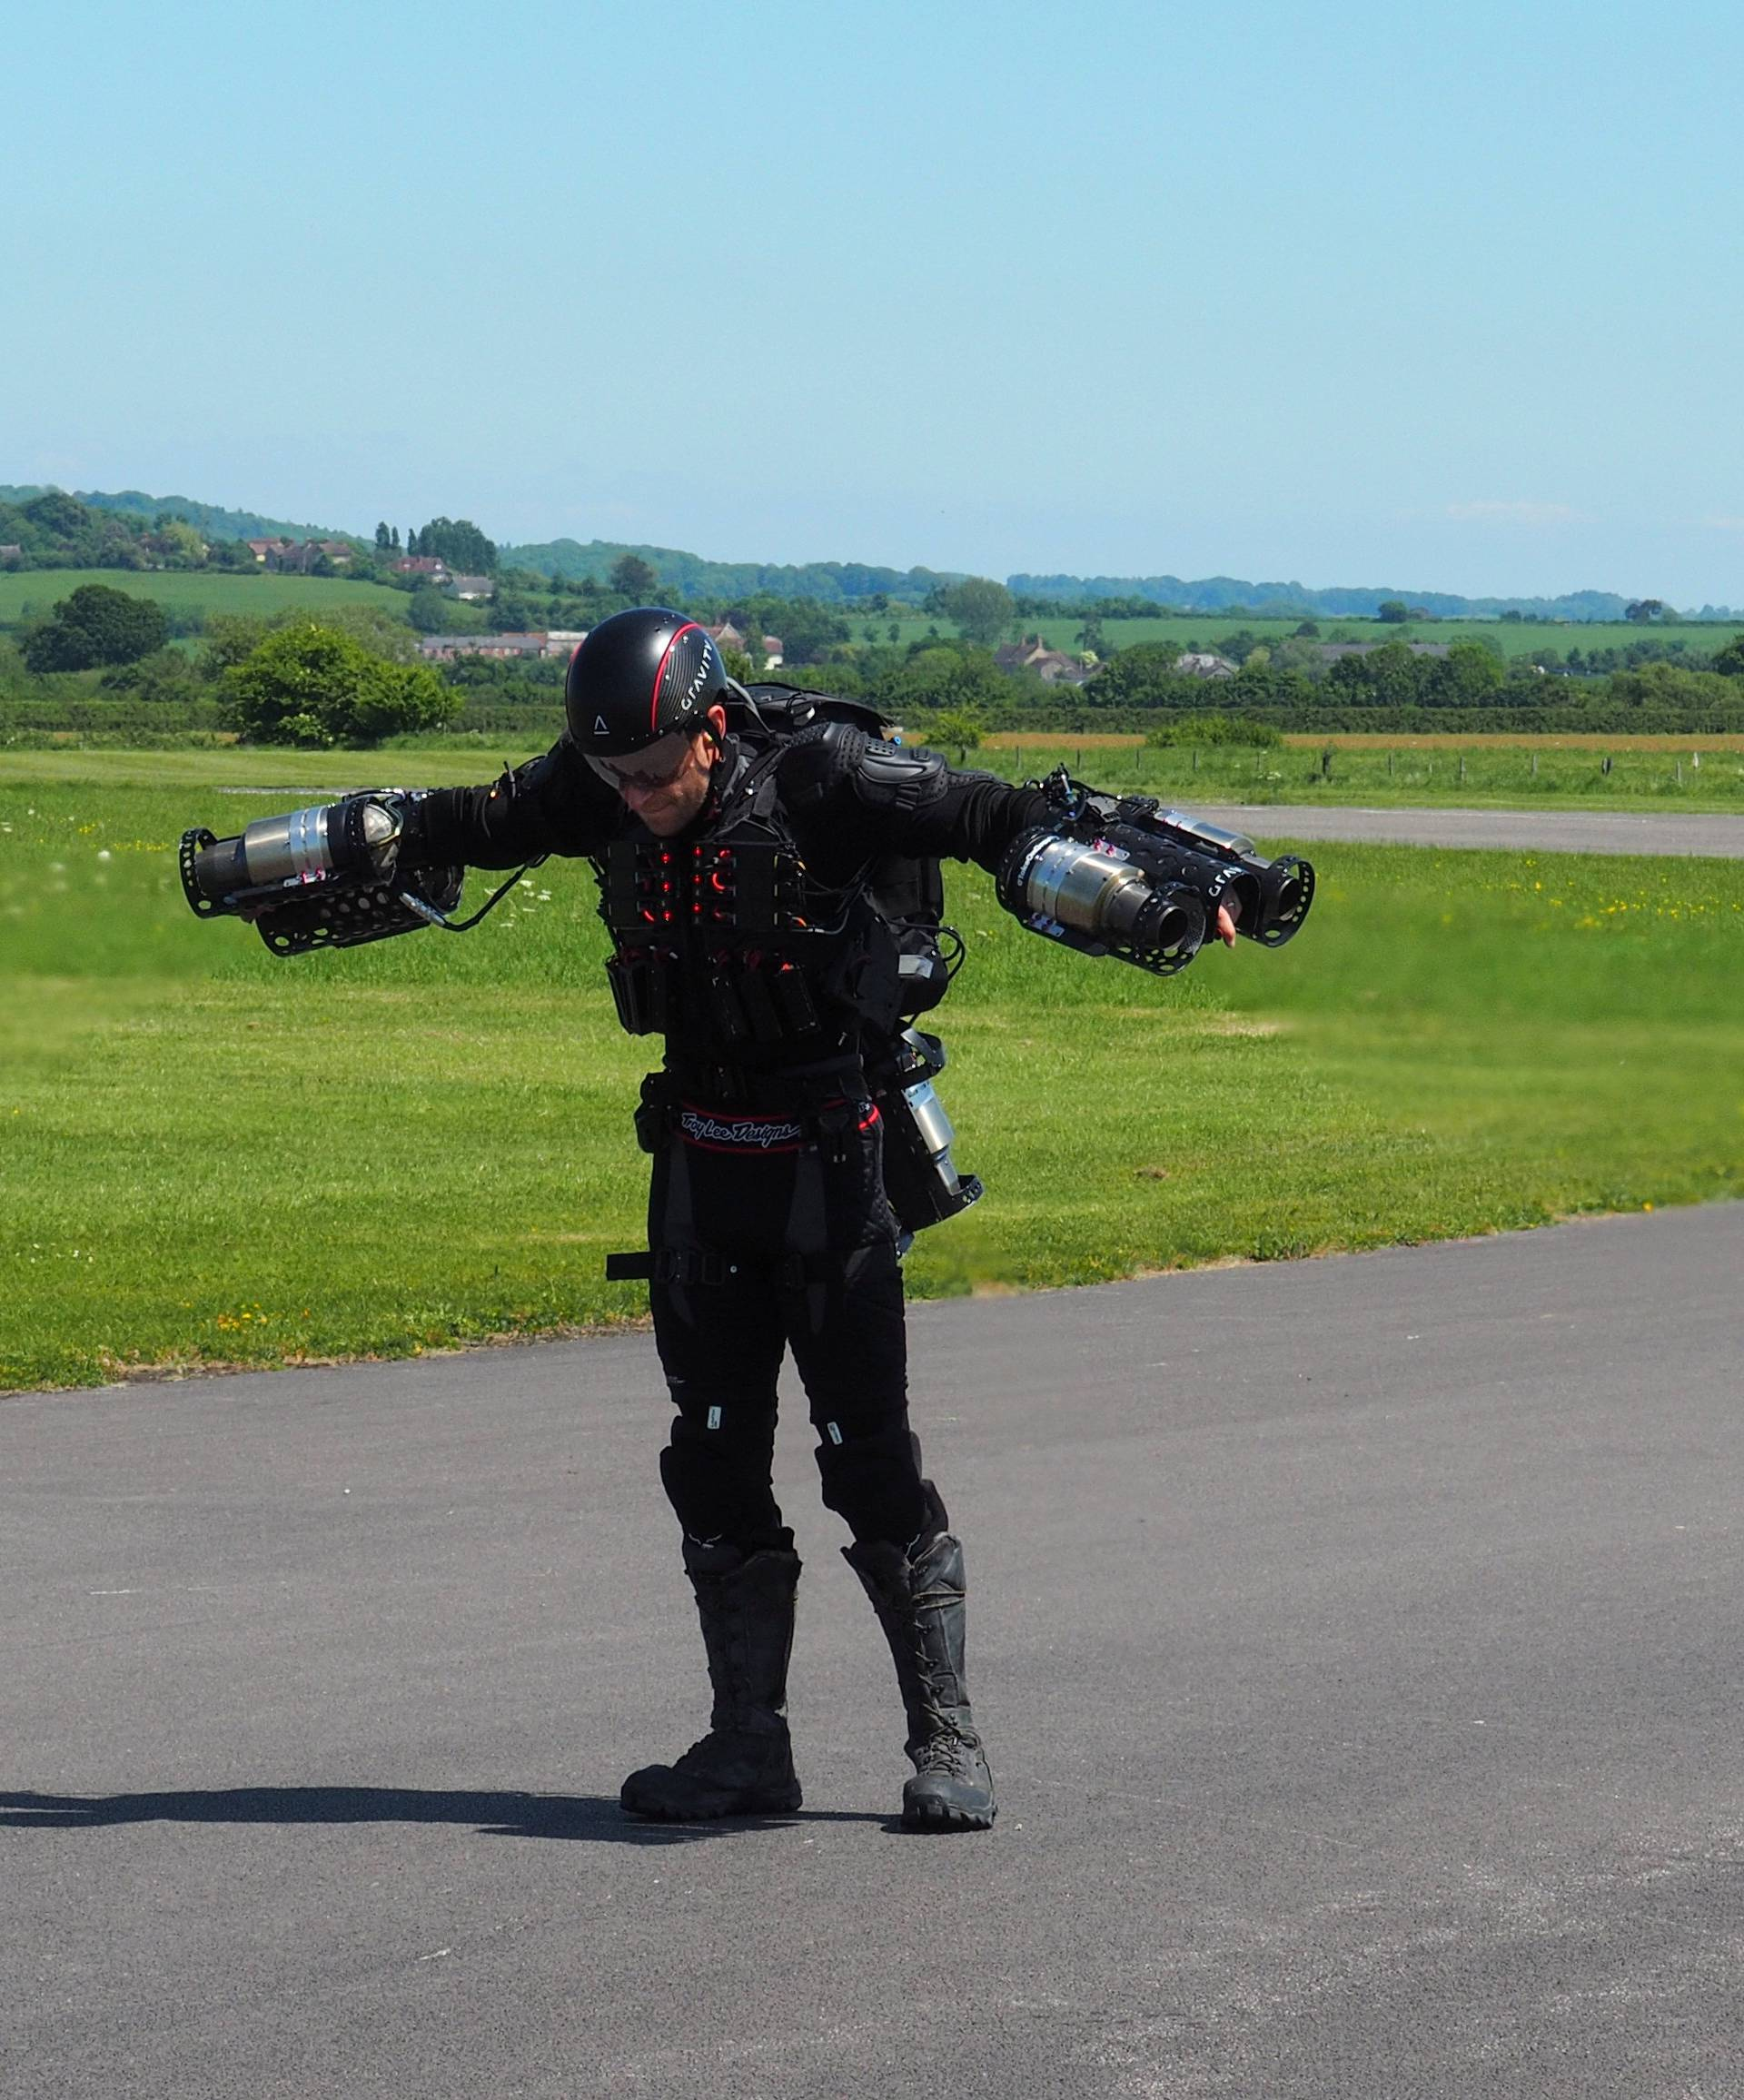 Inventor Richard Browning of technology startup Gravity prepares to take off in his ÒDaedalusÓ jet suit at Henstridge airfield in Somerset